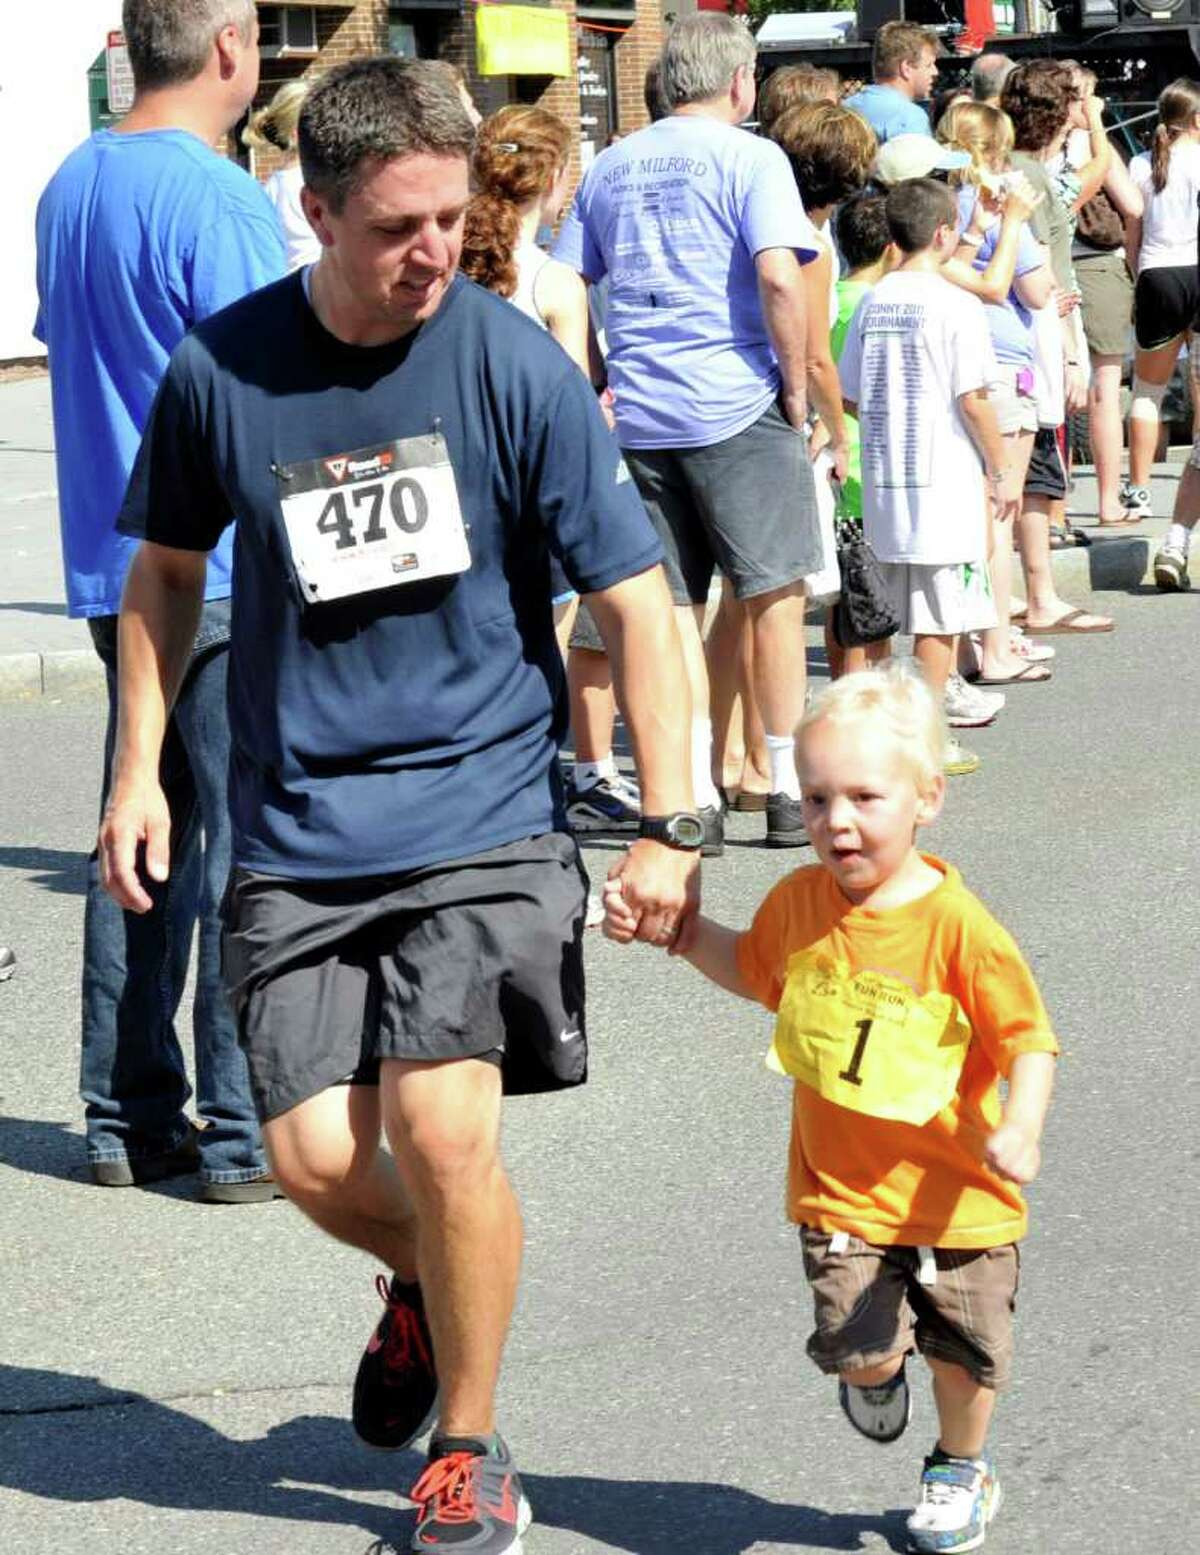 The New Milford 5K road race during Village Fair Days is held in New Milford, Saturday, July 30, 2011.